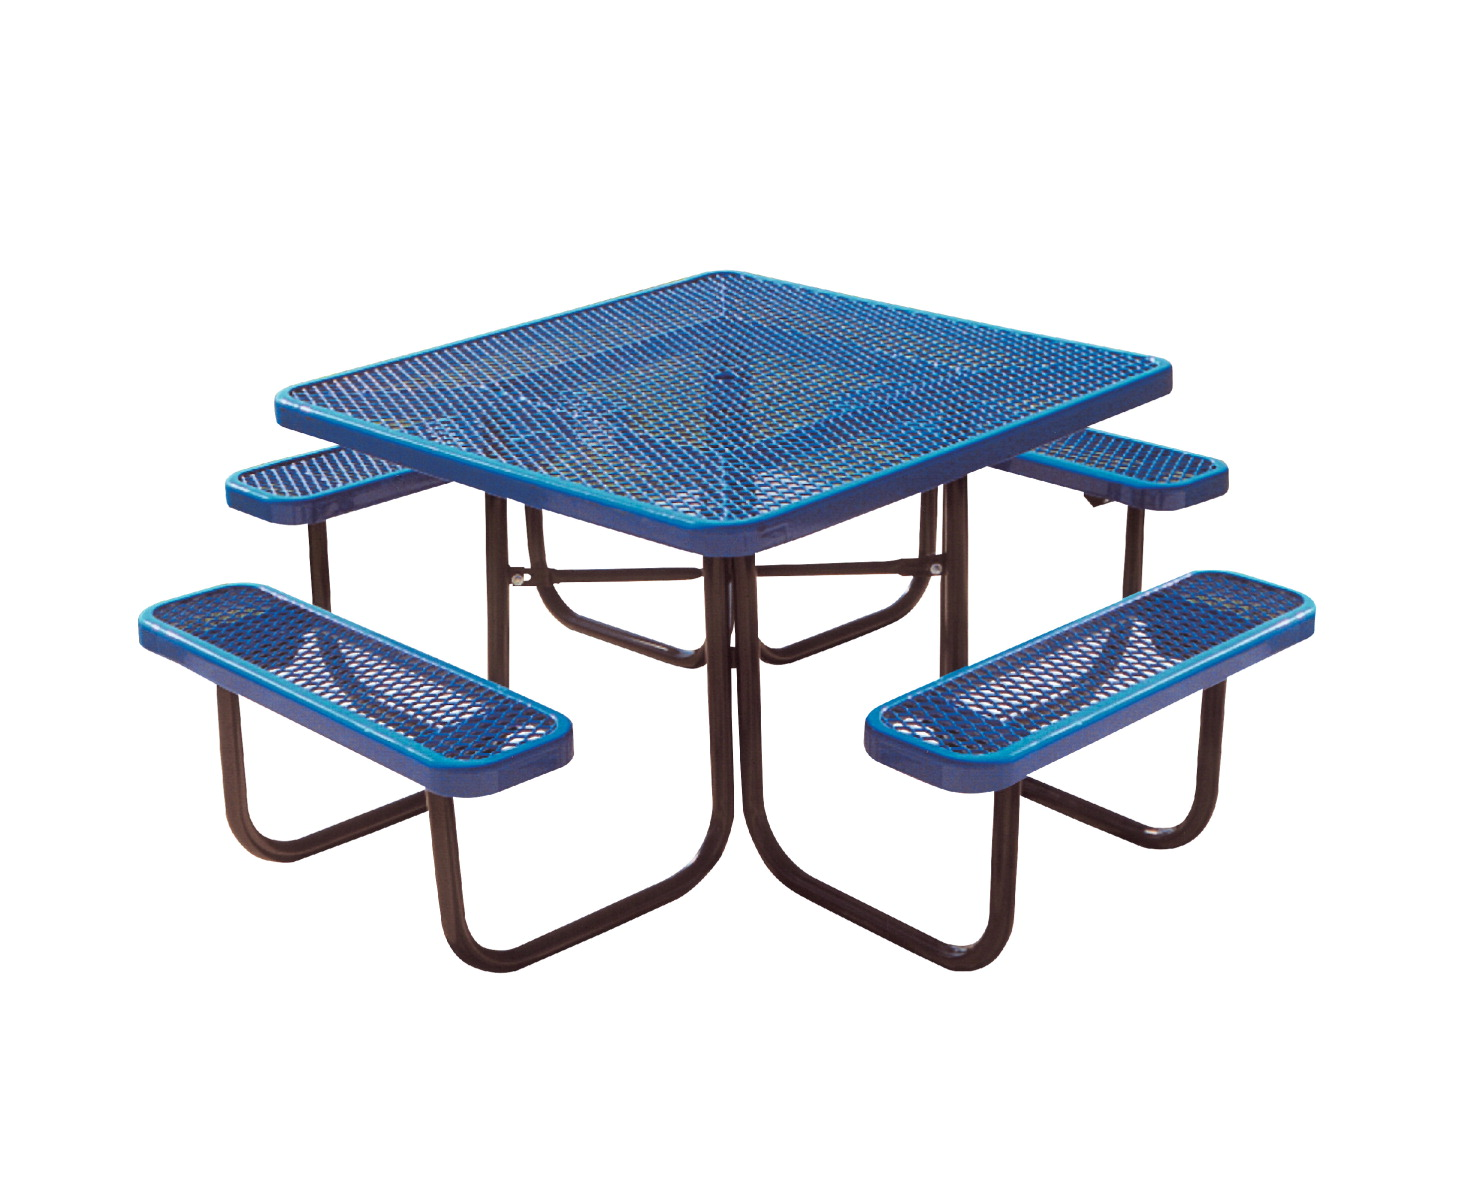 UltraSite UltraCoat Thermoplastic Square Table, Diamond Pattern, 78-3/4 x 78-3/4 x 30-1/4 Inches, Various Options